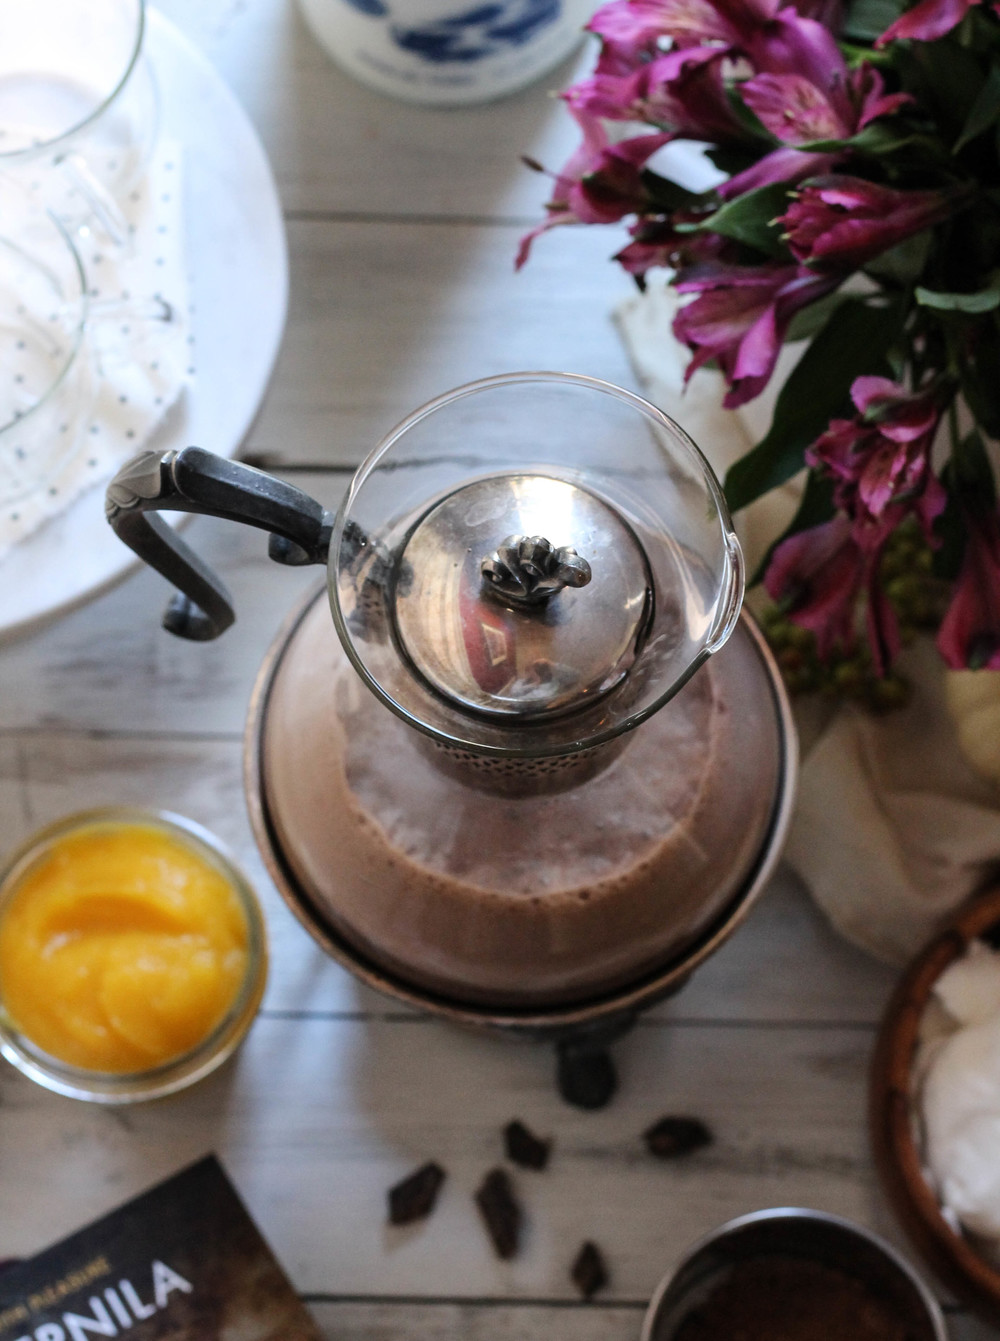 Spicy Pumpkin Hot Chocolate from The Homemade Kitchen {Pedantic Foodie}